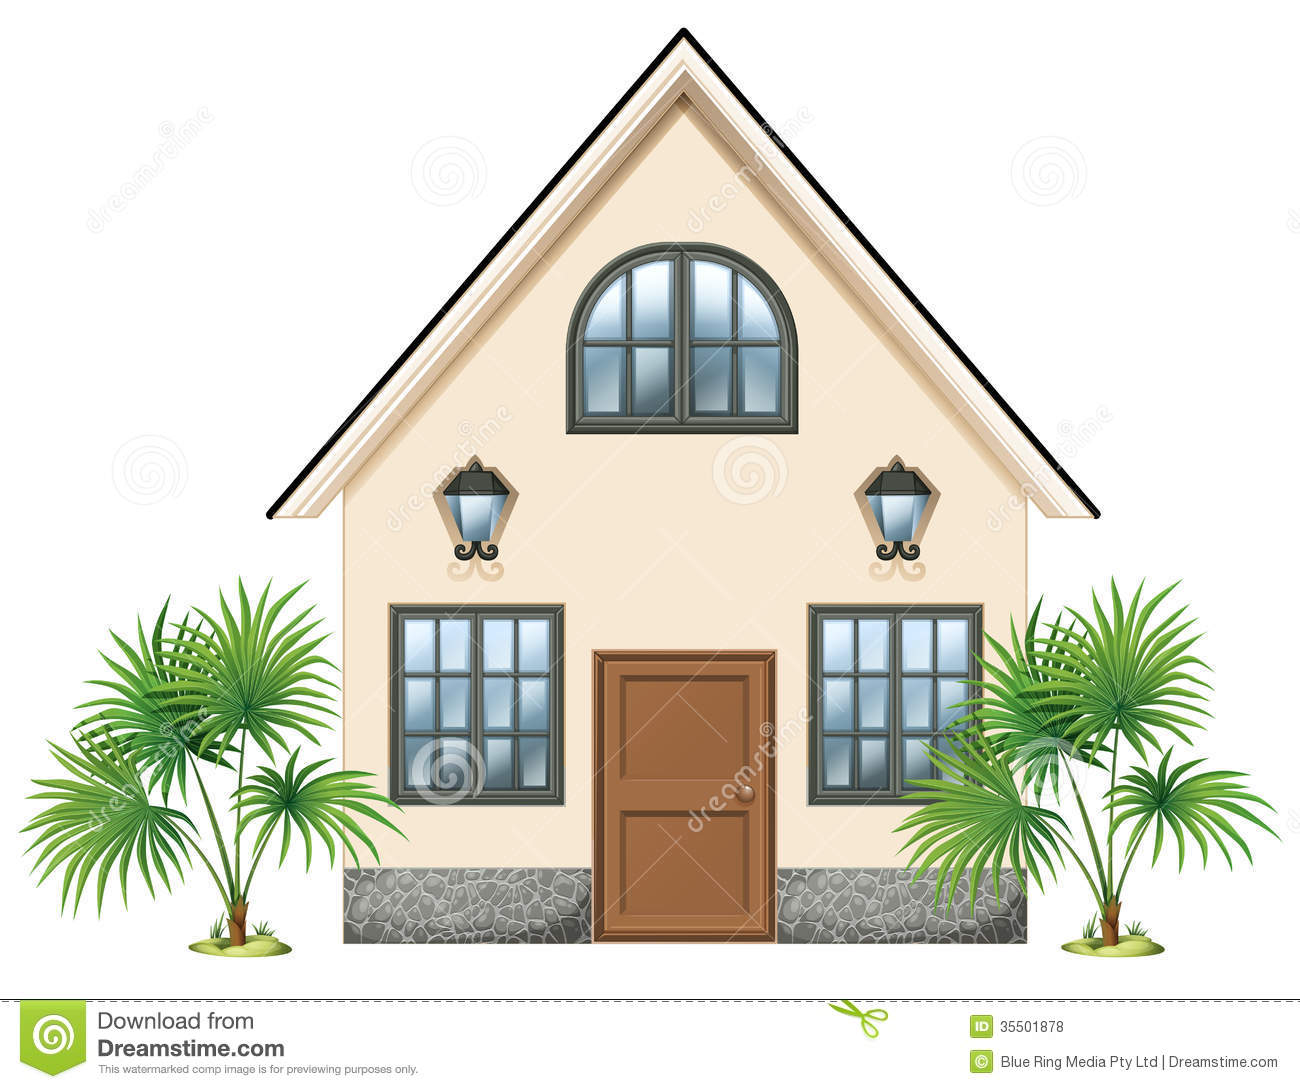 Simple House Images A Simple House Royalty Free Stock Photos Image 35501878